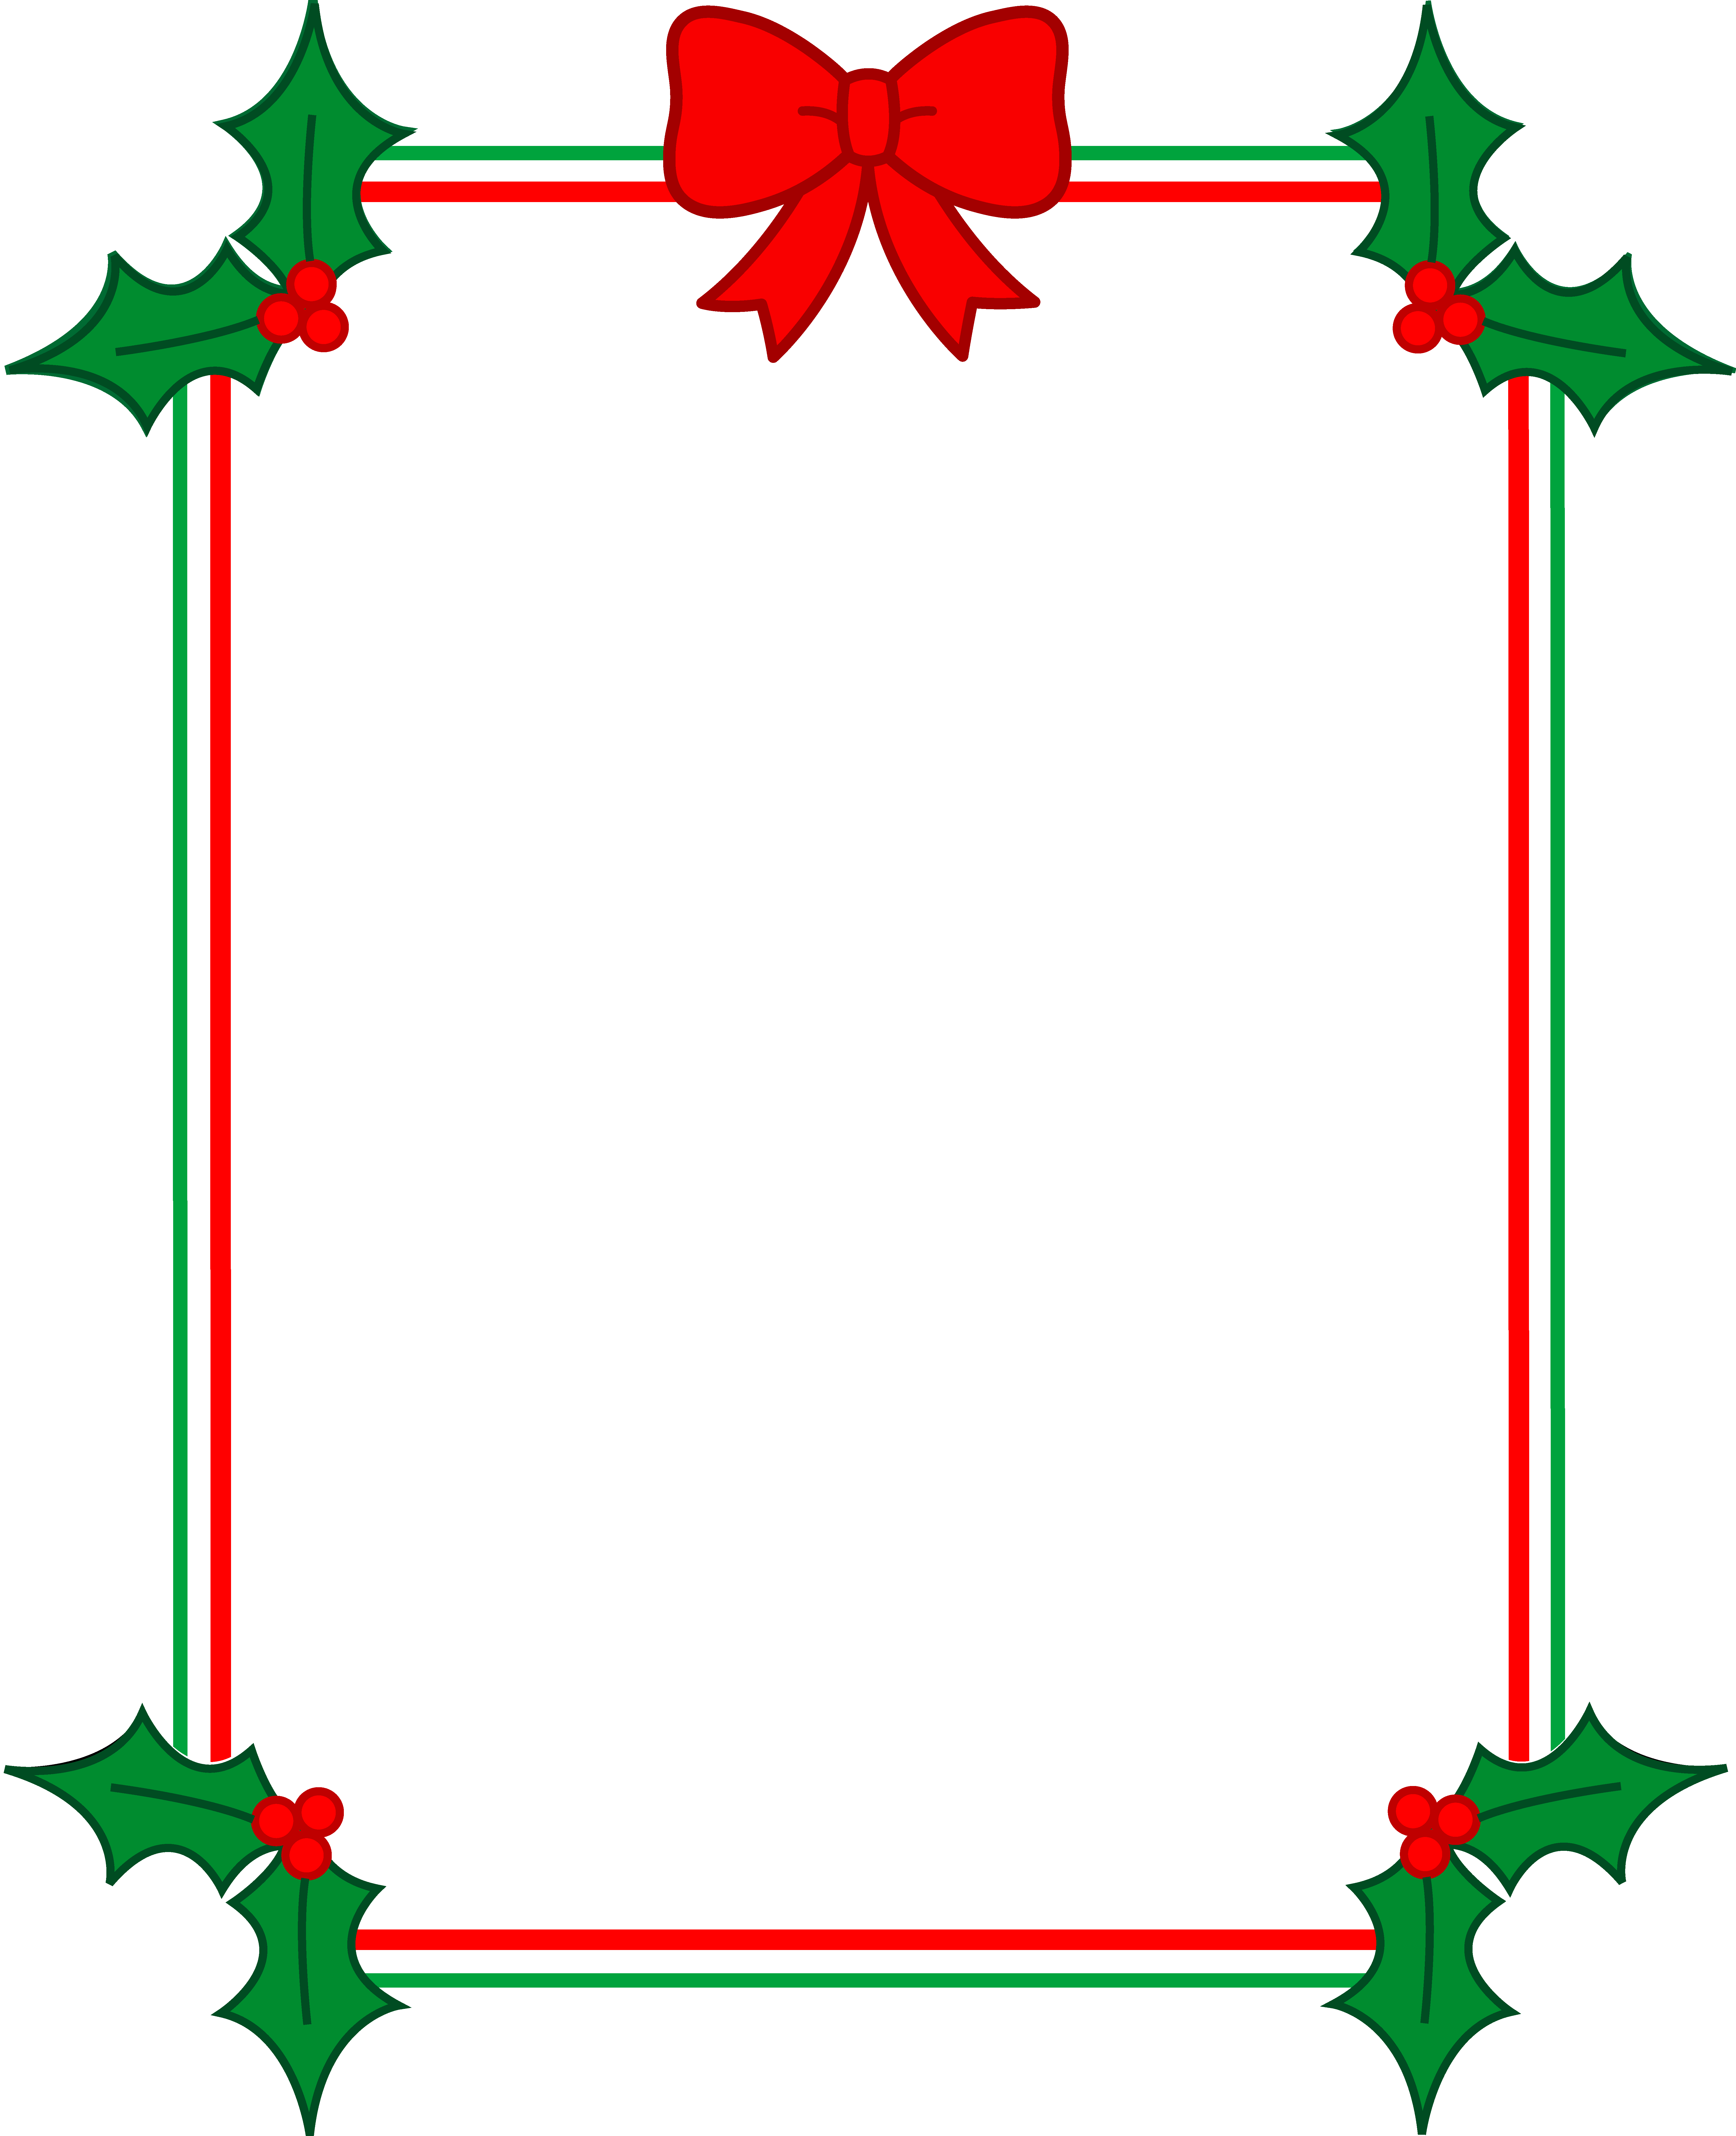 Holiday border frame png. Christmas with holly and